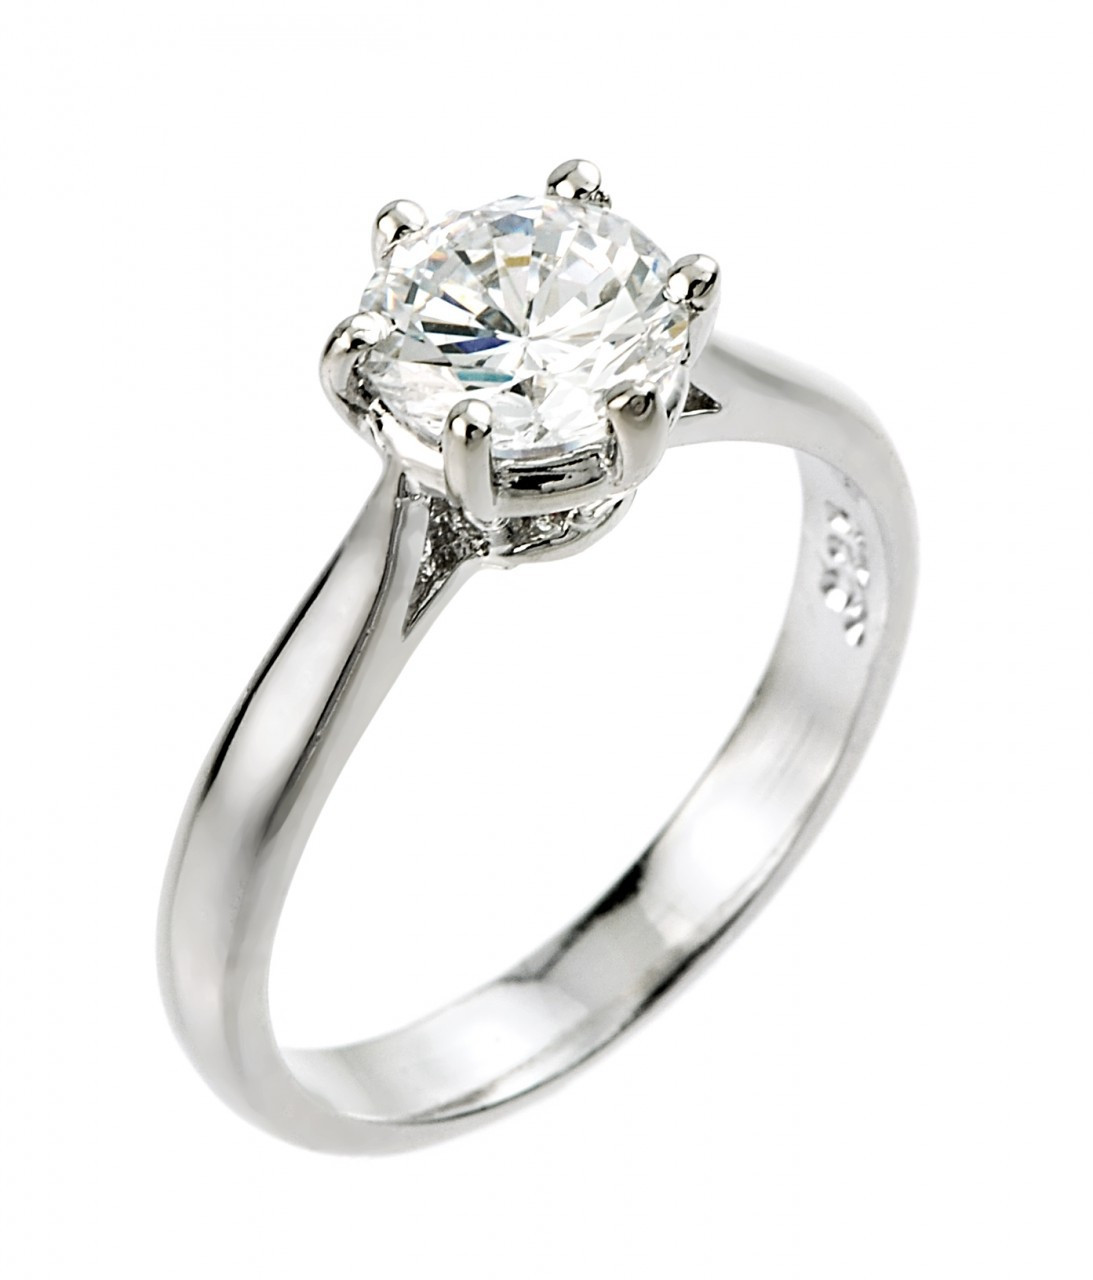 Women/'s 14K Classic White Gold 3ct 9.5 mm Round Solitaire CZ Engagement Ring